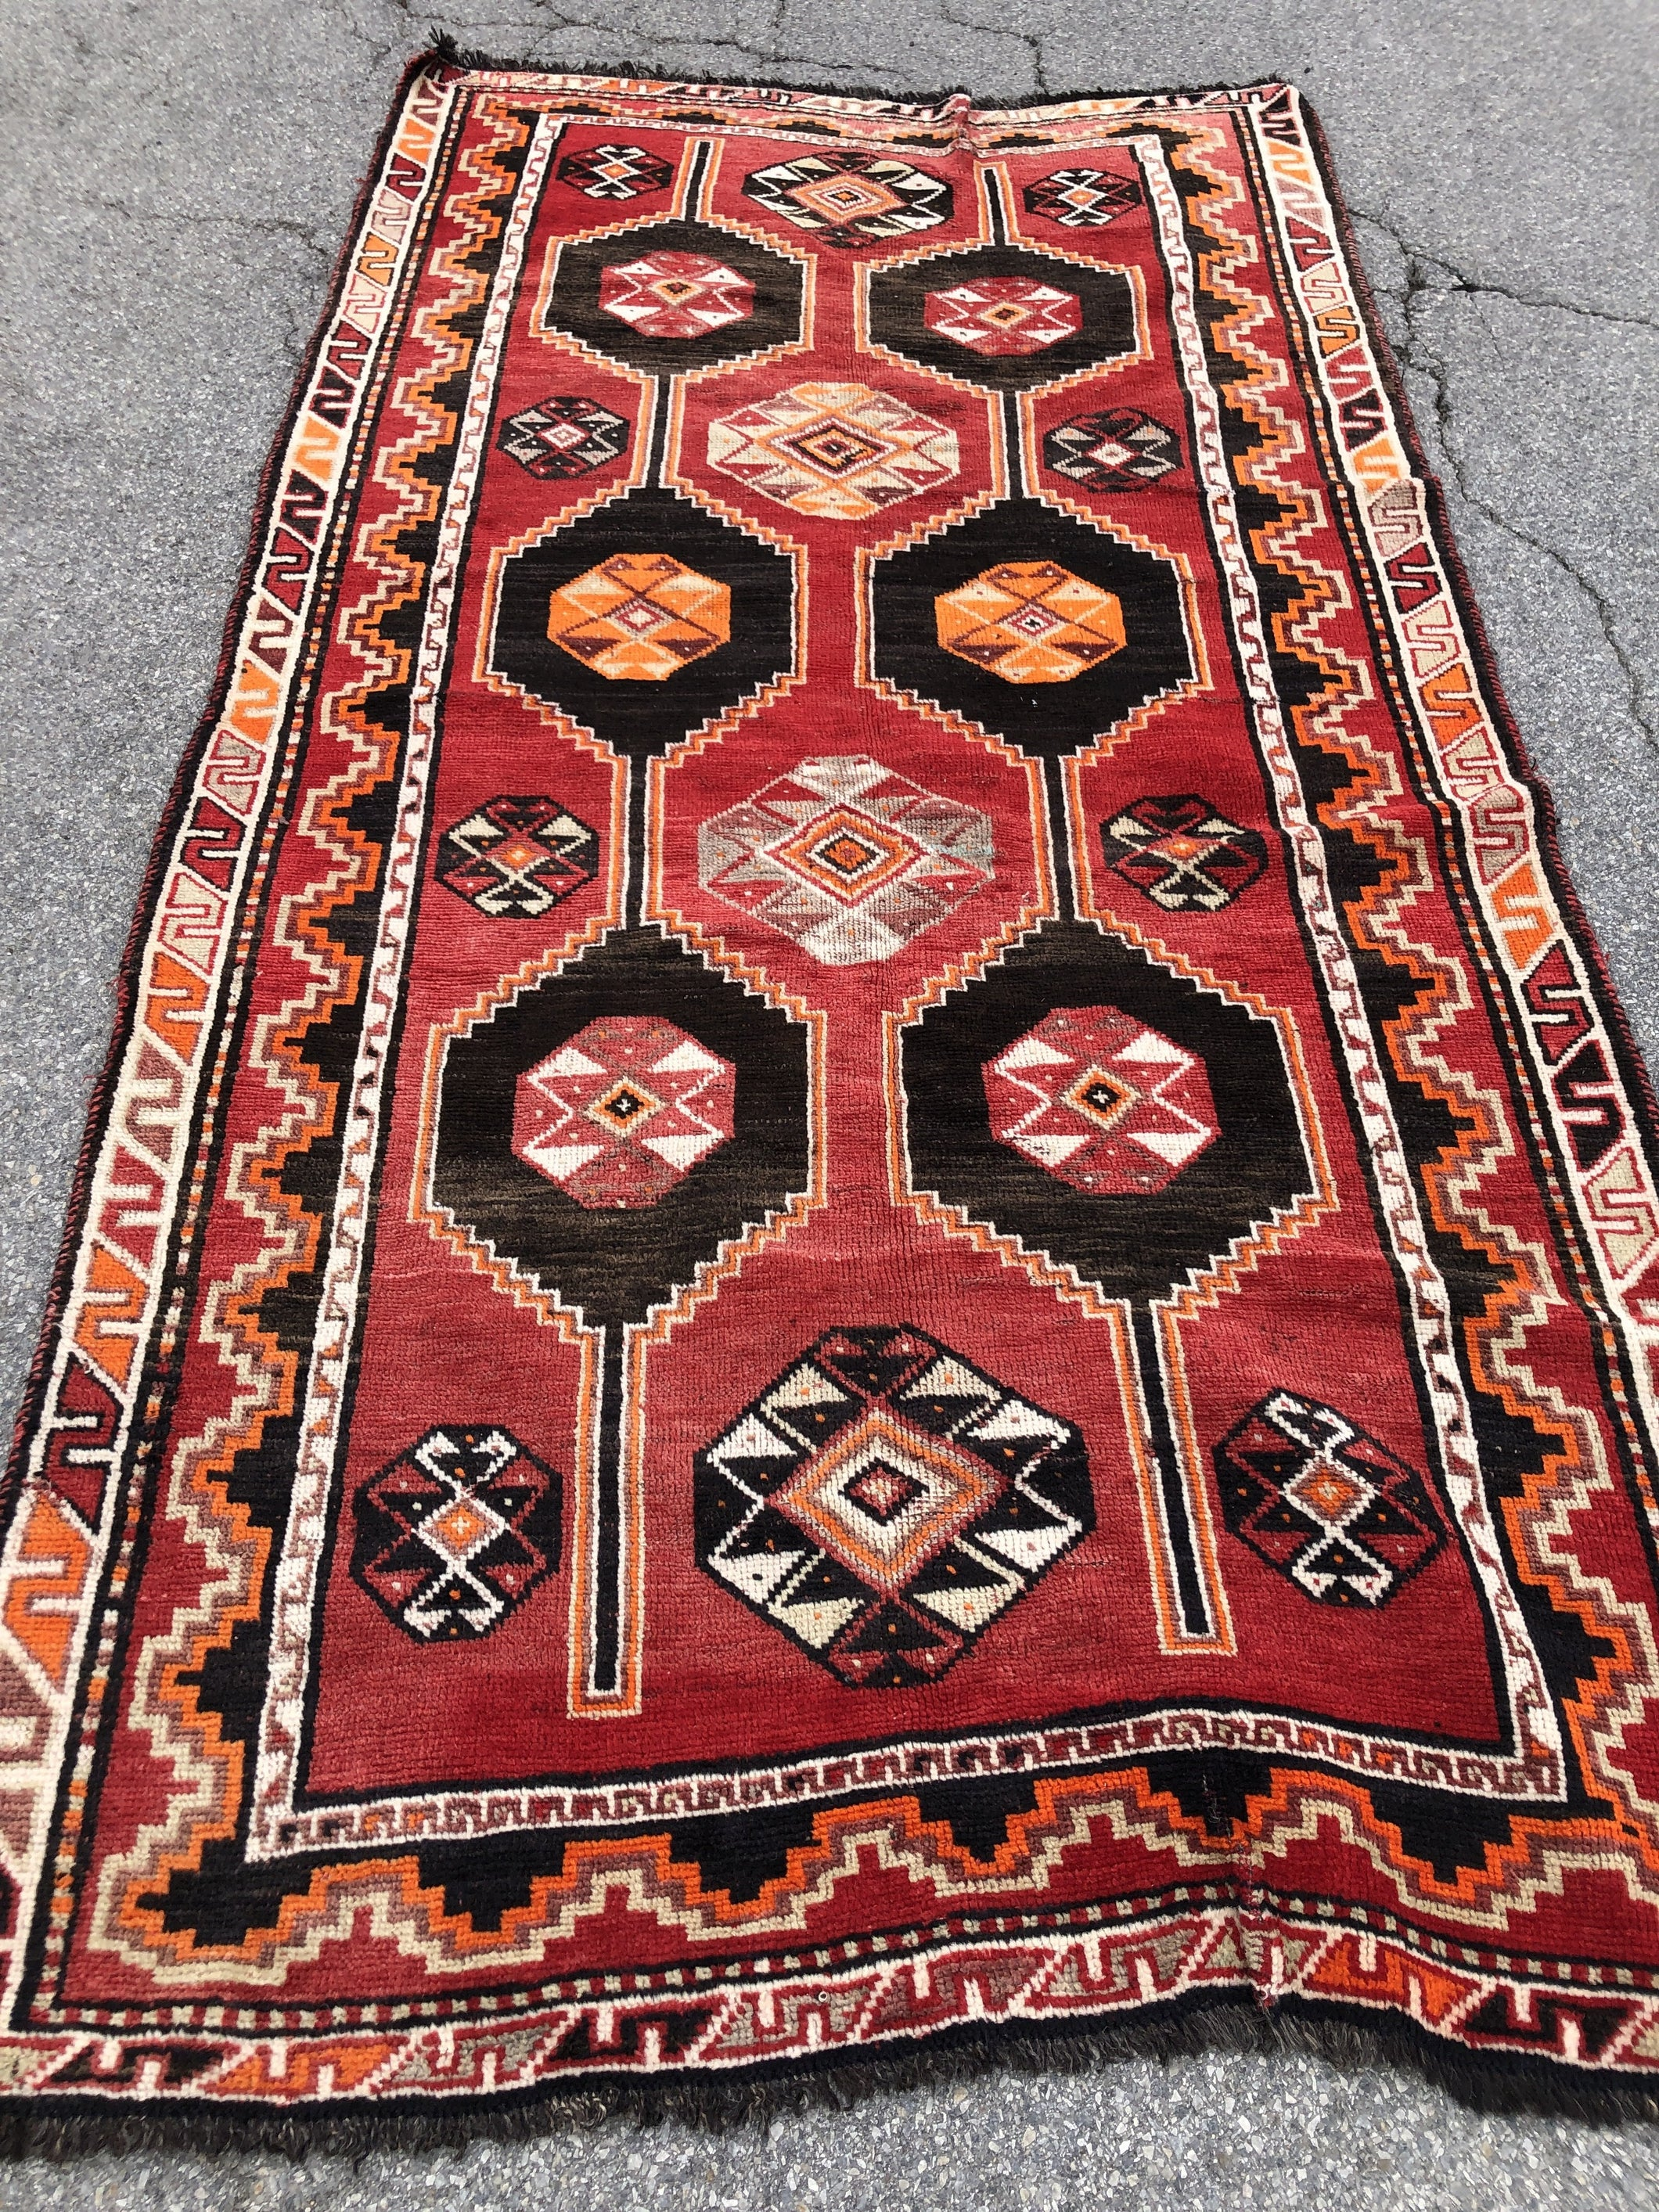 "R130: handmade wool Turkish tribal pattern rug 4'11"" x 9'7"""